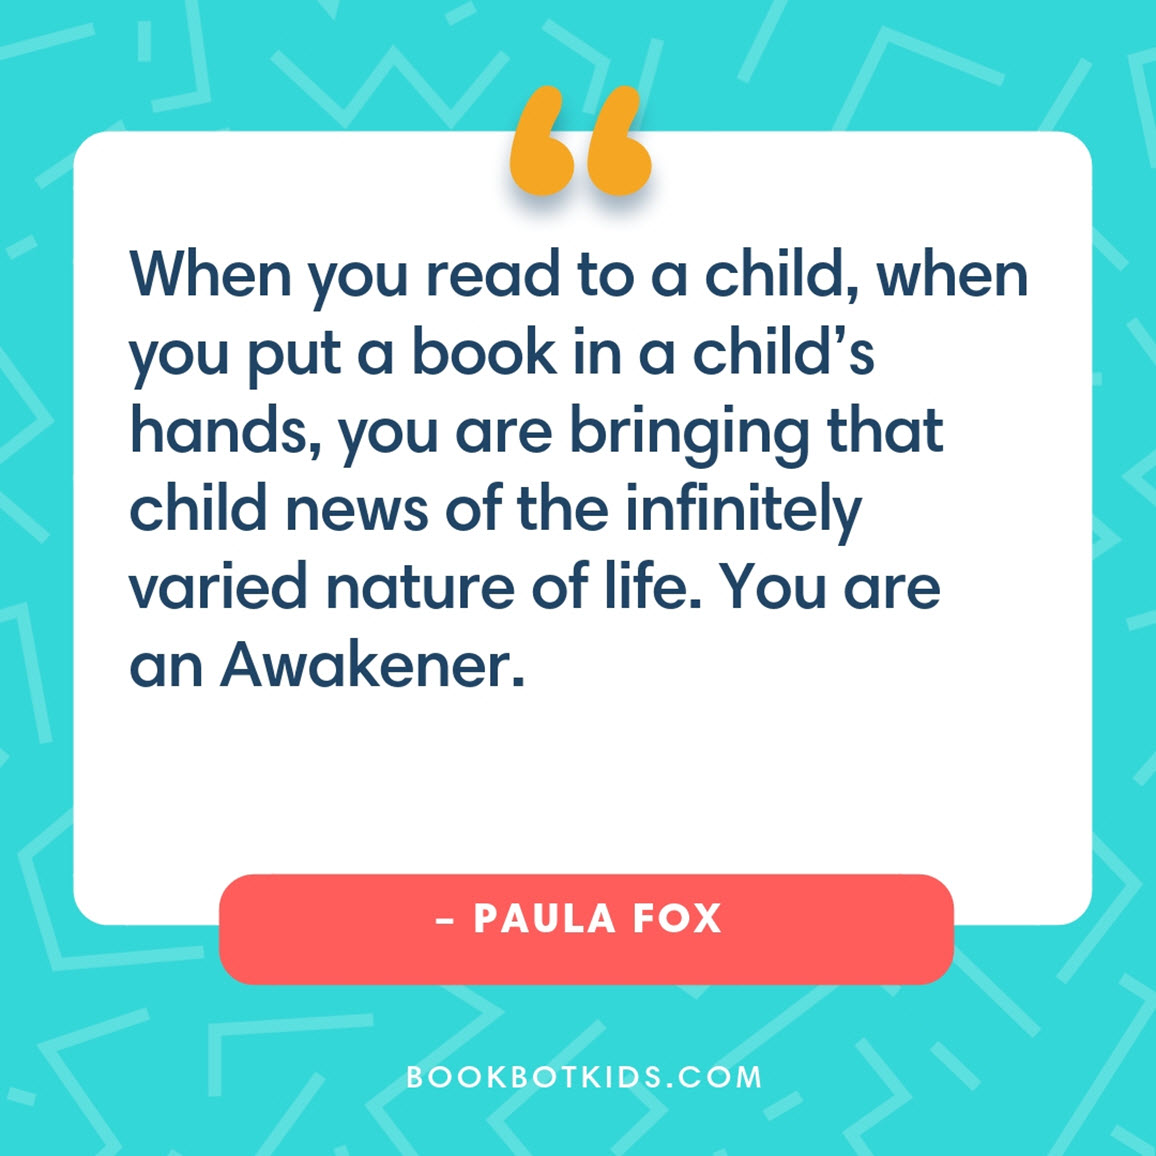 When you read to a child, when you put a book in a child's hands, you are bringing that child news of the infinitely varied nature of life. You are an Awakener. – Paula Fox